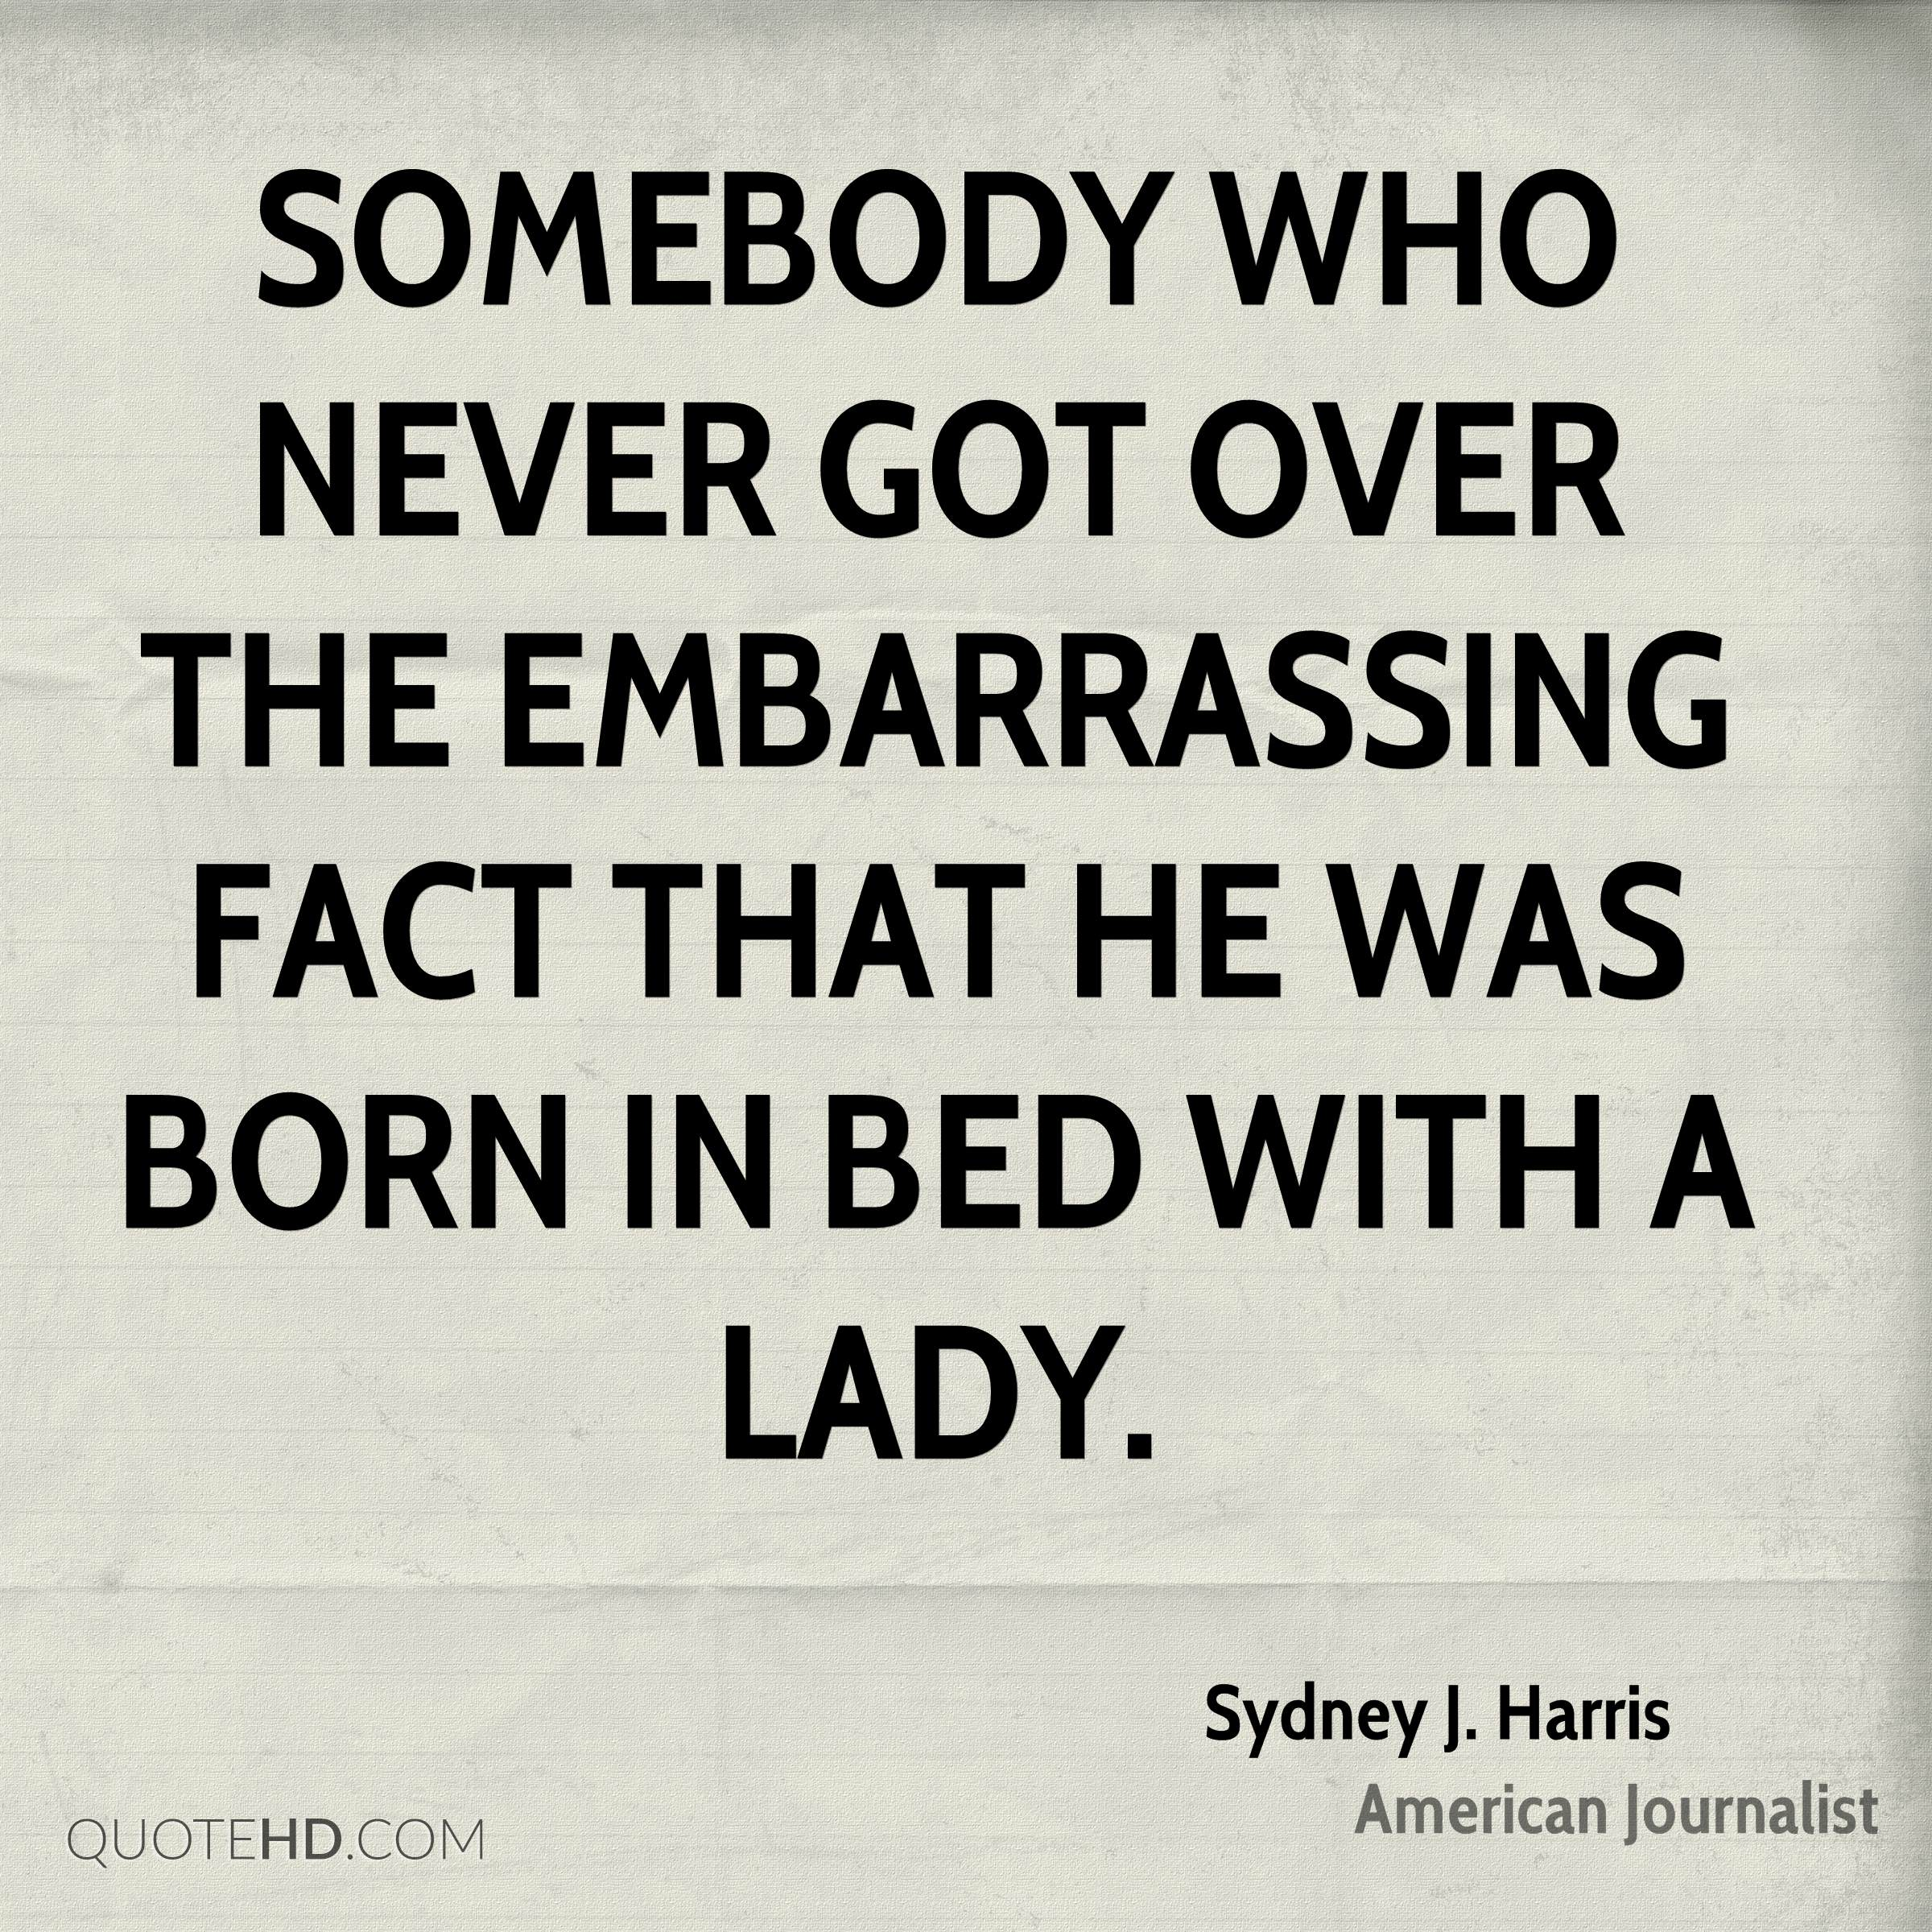 Somebody who never got over the embarrassing fact that he was born in bed with a lady.